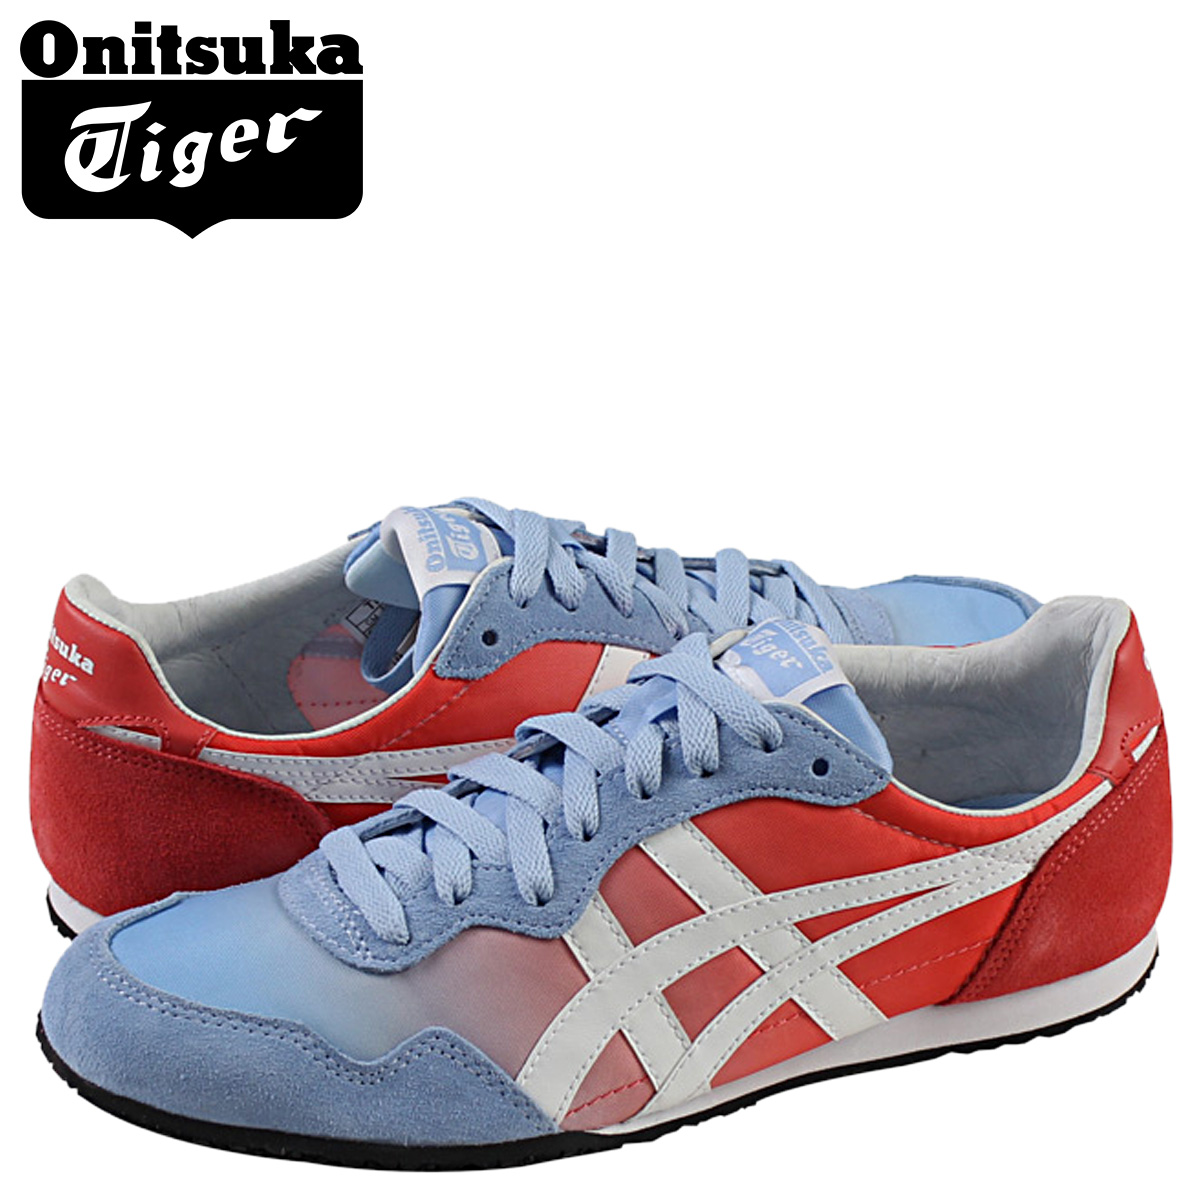 asics shoes quora meaning in marathi language recipes 681079